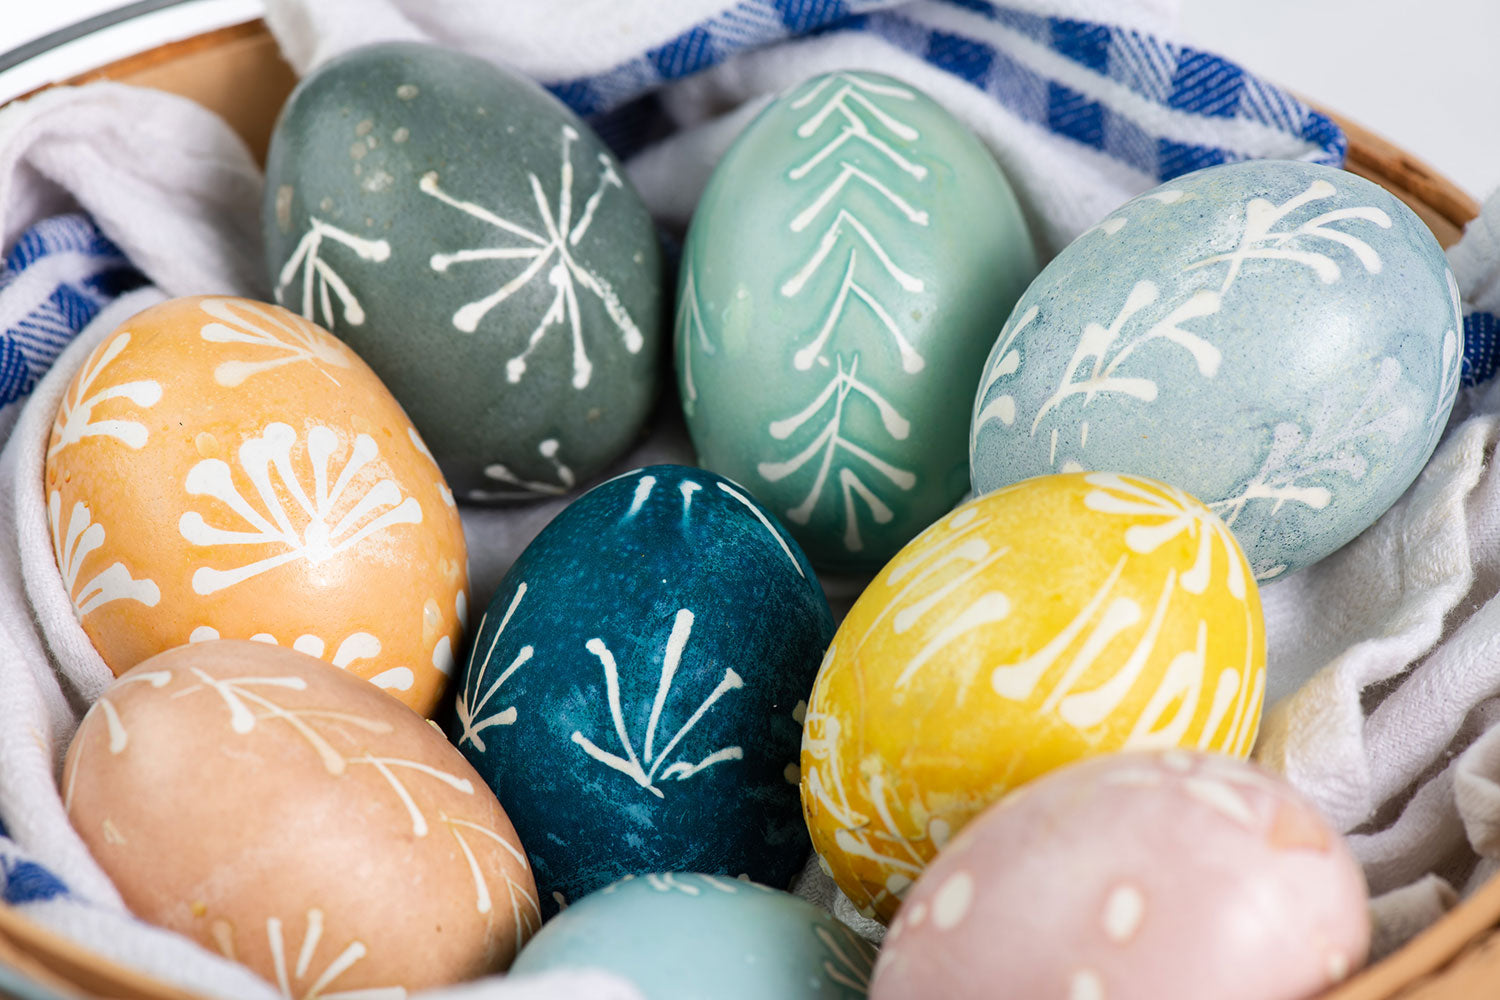 Lithuanian batik easter eggs dyed with natural dyes